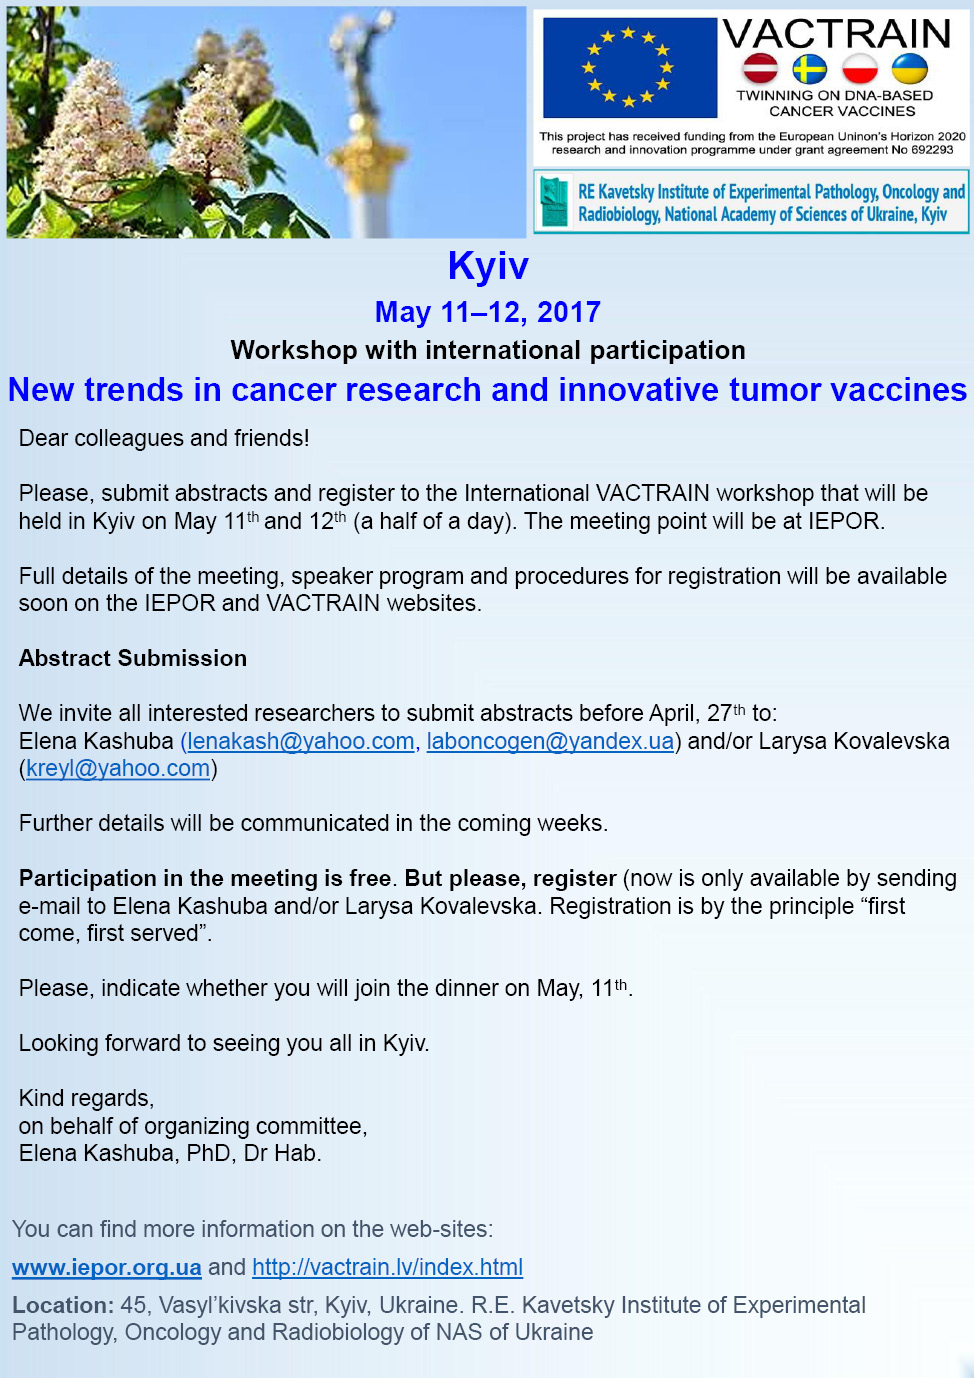 Workshop with International Participation ''New Trends in Cancer Research and Innovative Tumor Vaccines'', May 11–12, 2017, Kyiv, Ukraine